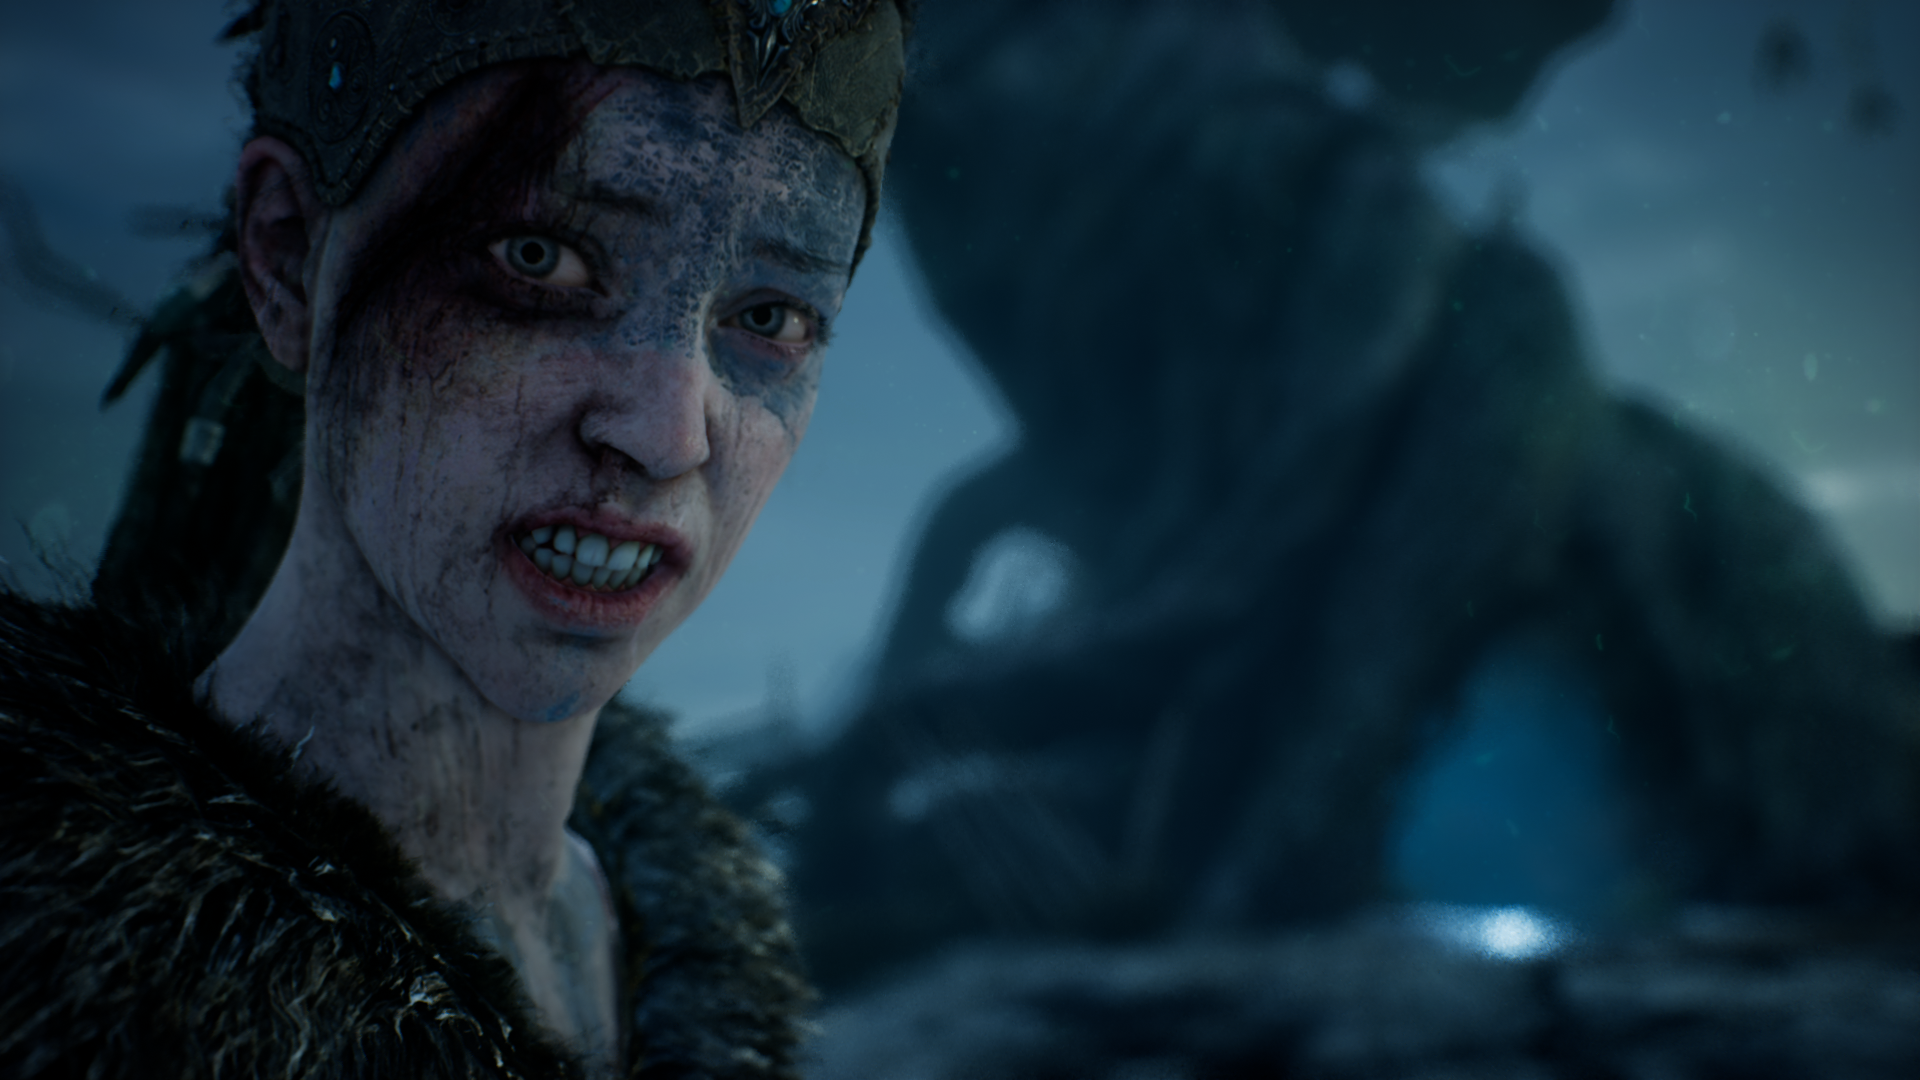 Hellblade senua 39 s sacrifice hd wallpaper background image 1920x1080 id 865164 wallpaper - Sacrifice wallpaper ...